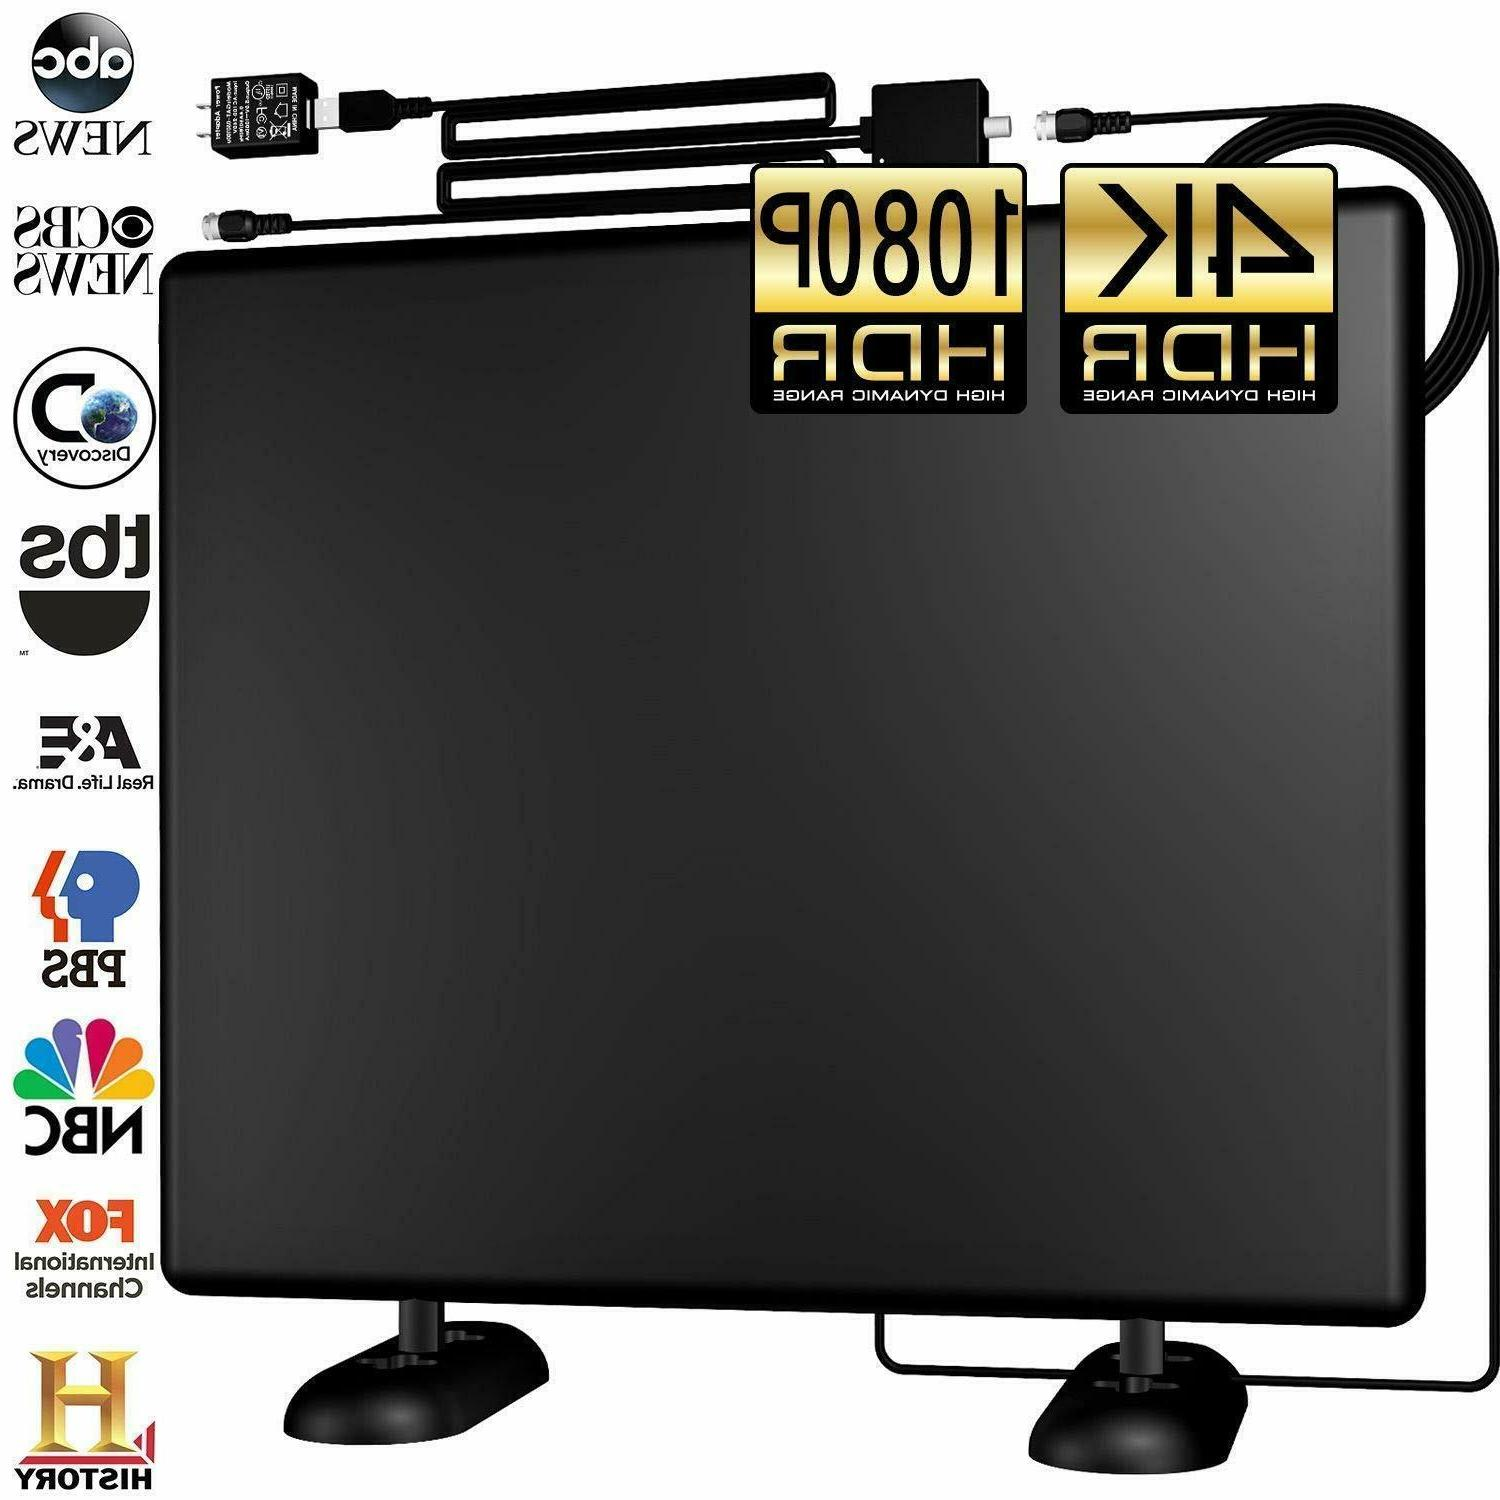 4k antenna for tv digital outdoor indoor